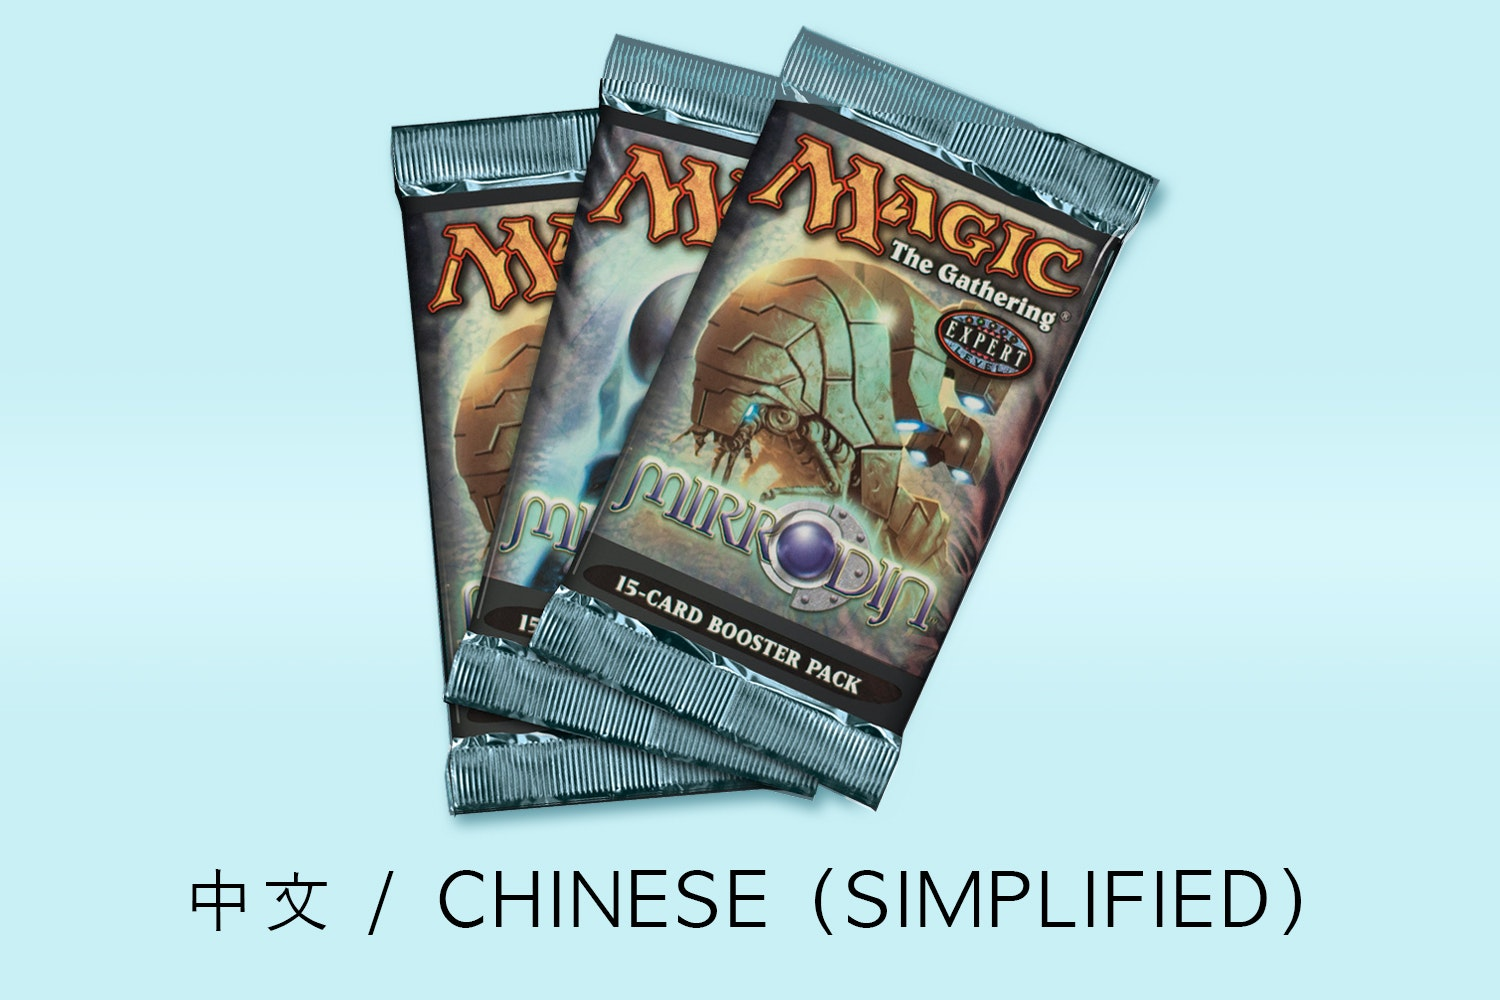 Mirrodin in Simplified Chinese